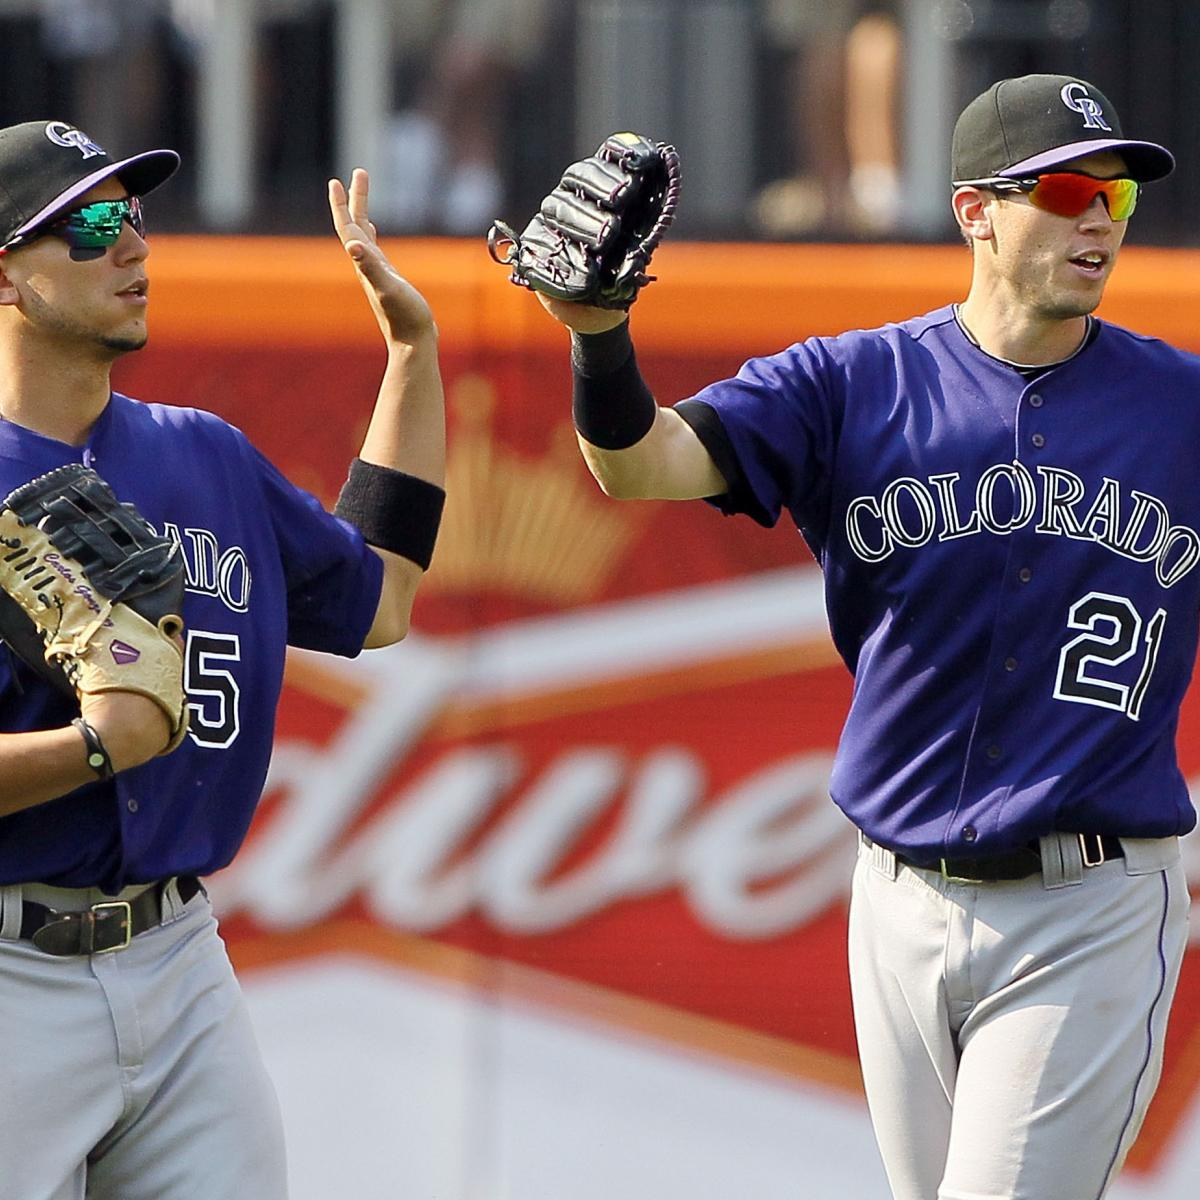 Nuggets Starting Lineup: Predicting The Colorado Rockies' Starting Lineup In 2013